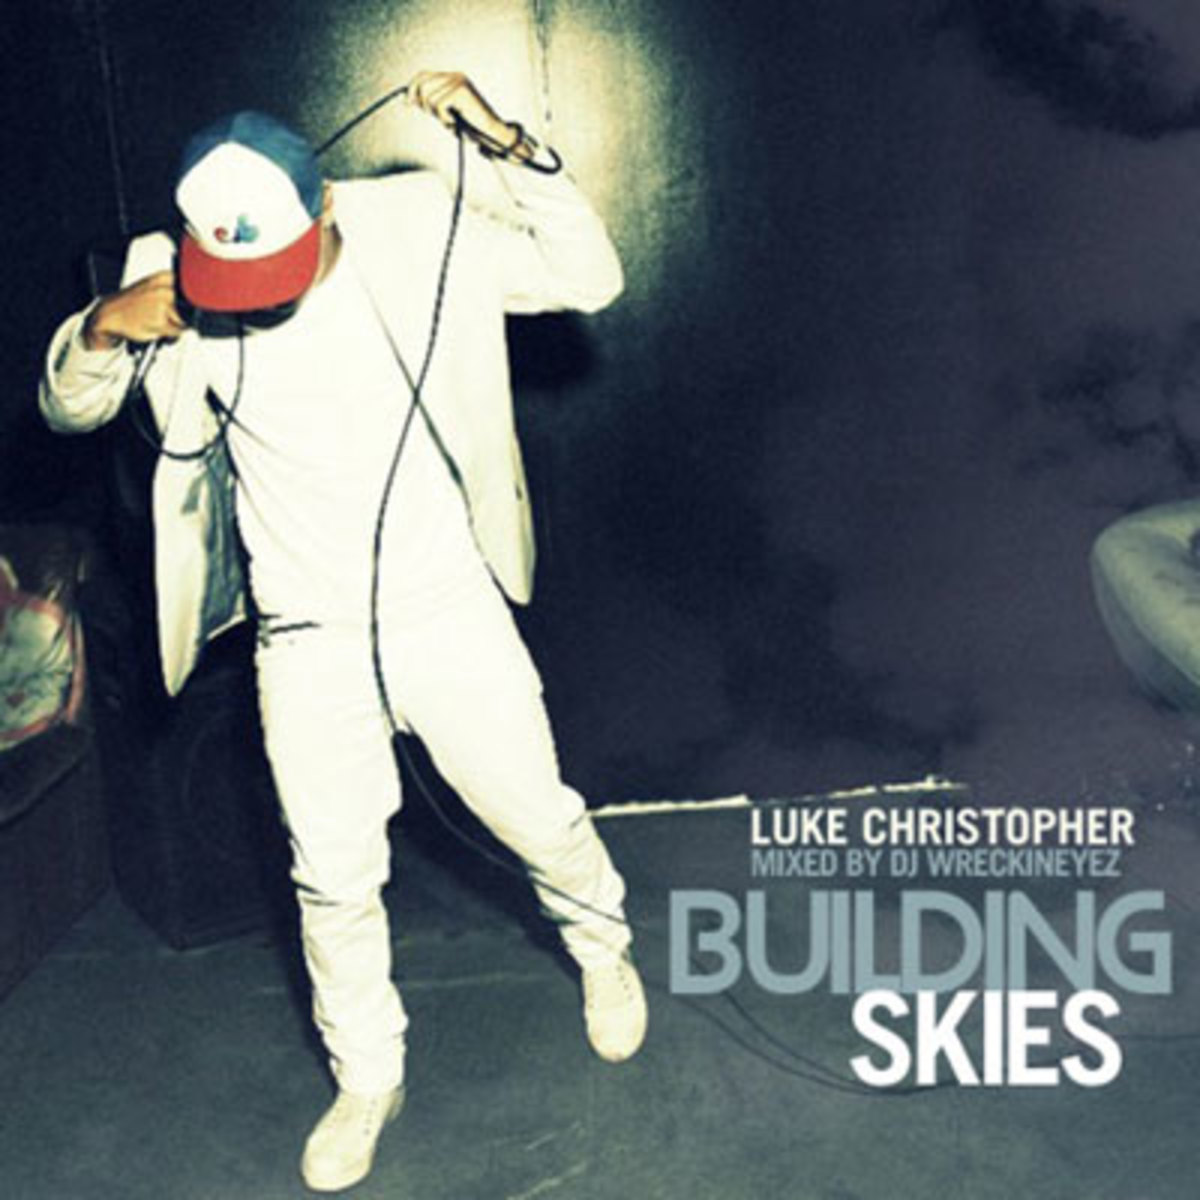 lukechris-buildingskies.jpg